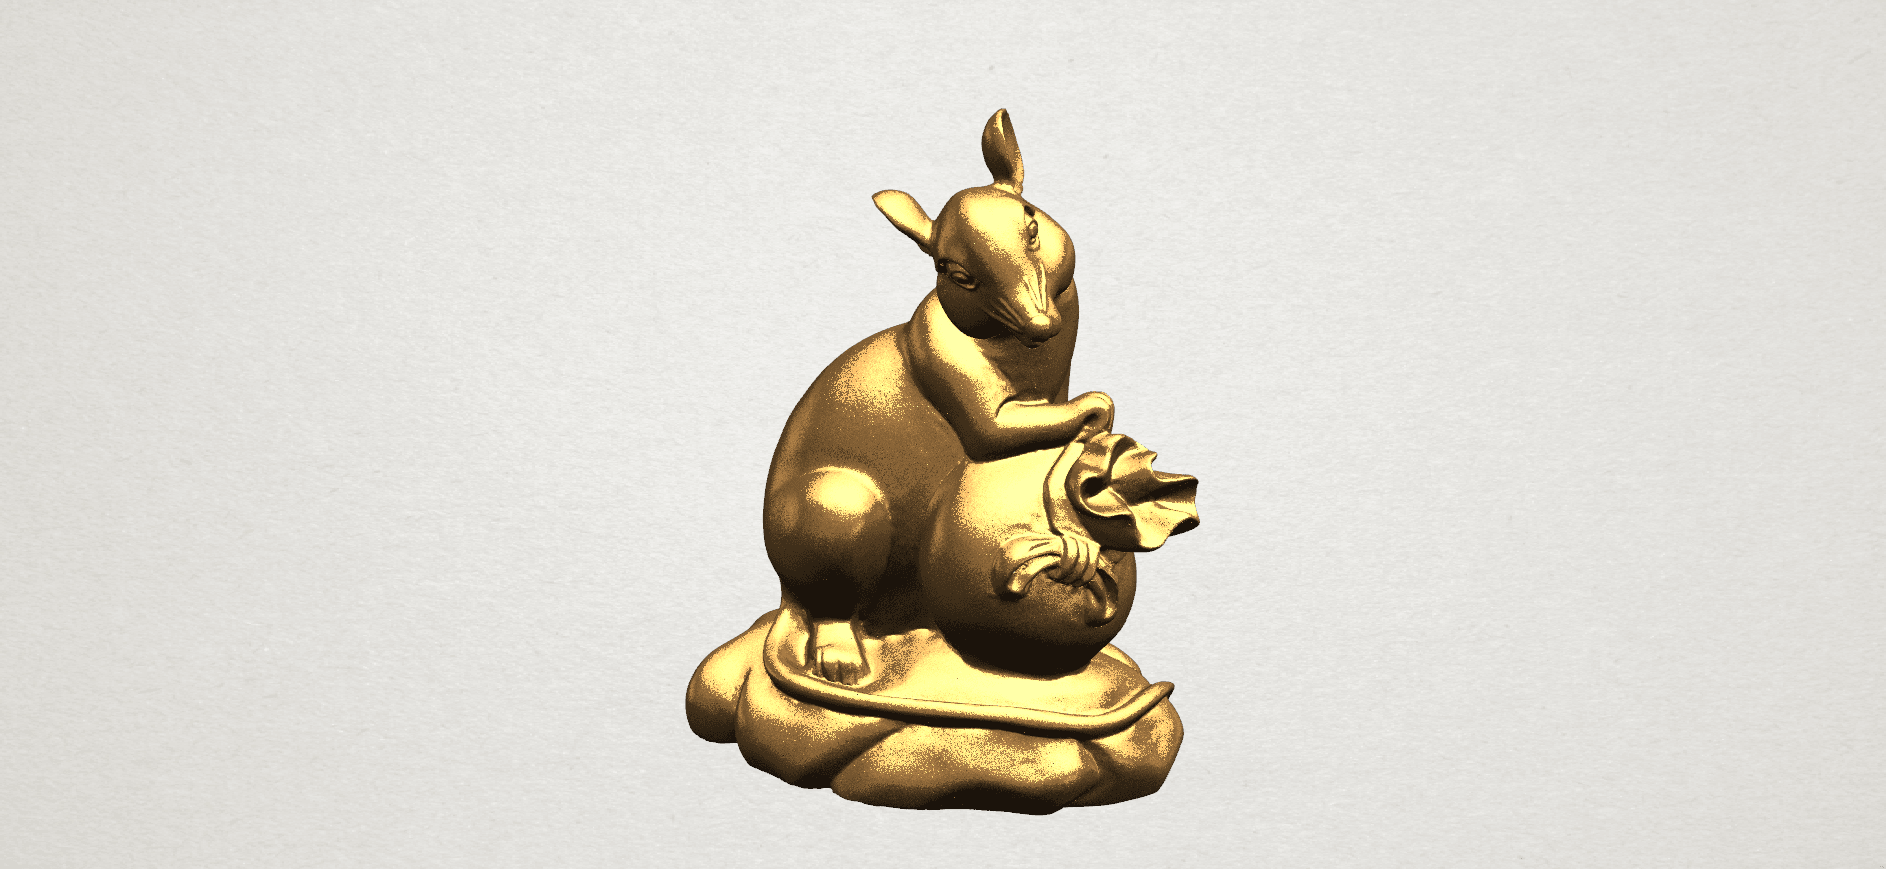 Chinese Horoscope01-01.png Download free STL file Chinese Horoscope 01 Rat • 3D printing object, GeorgesNikkei